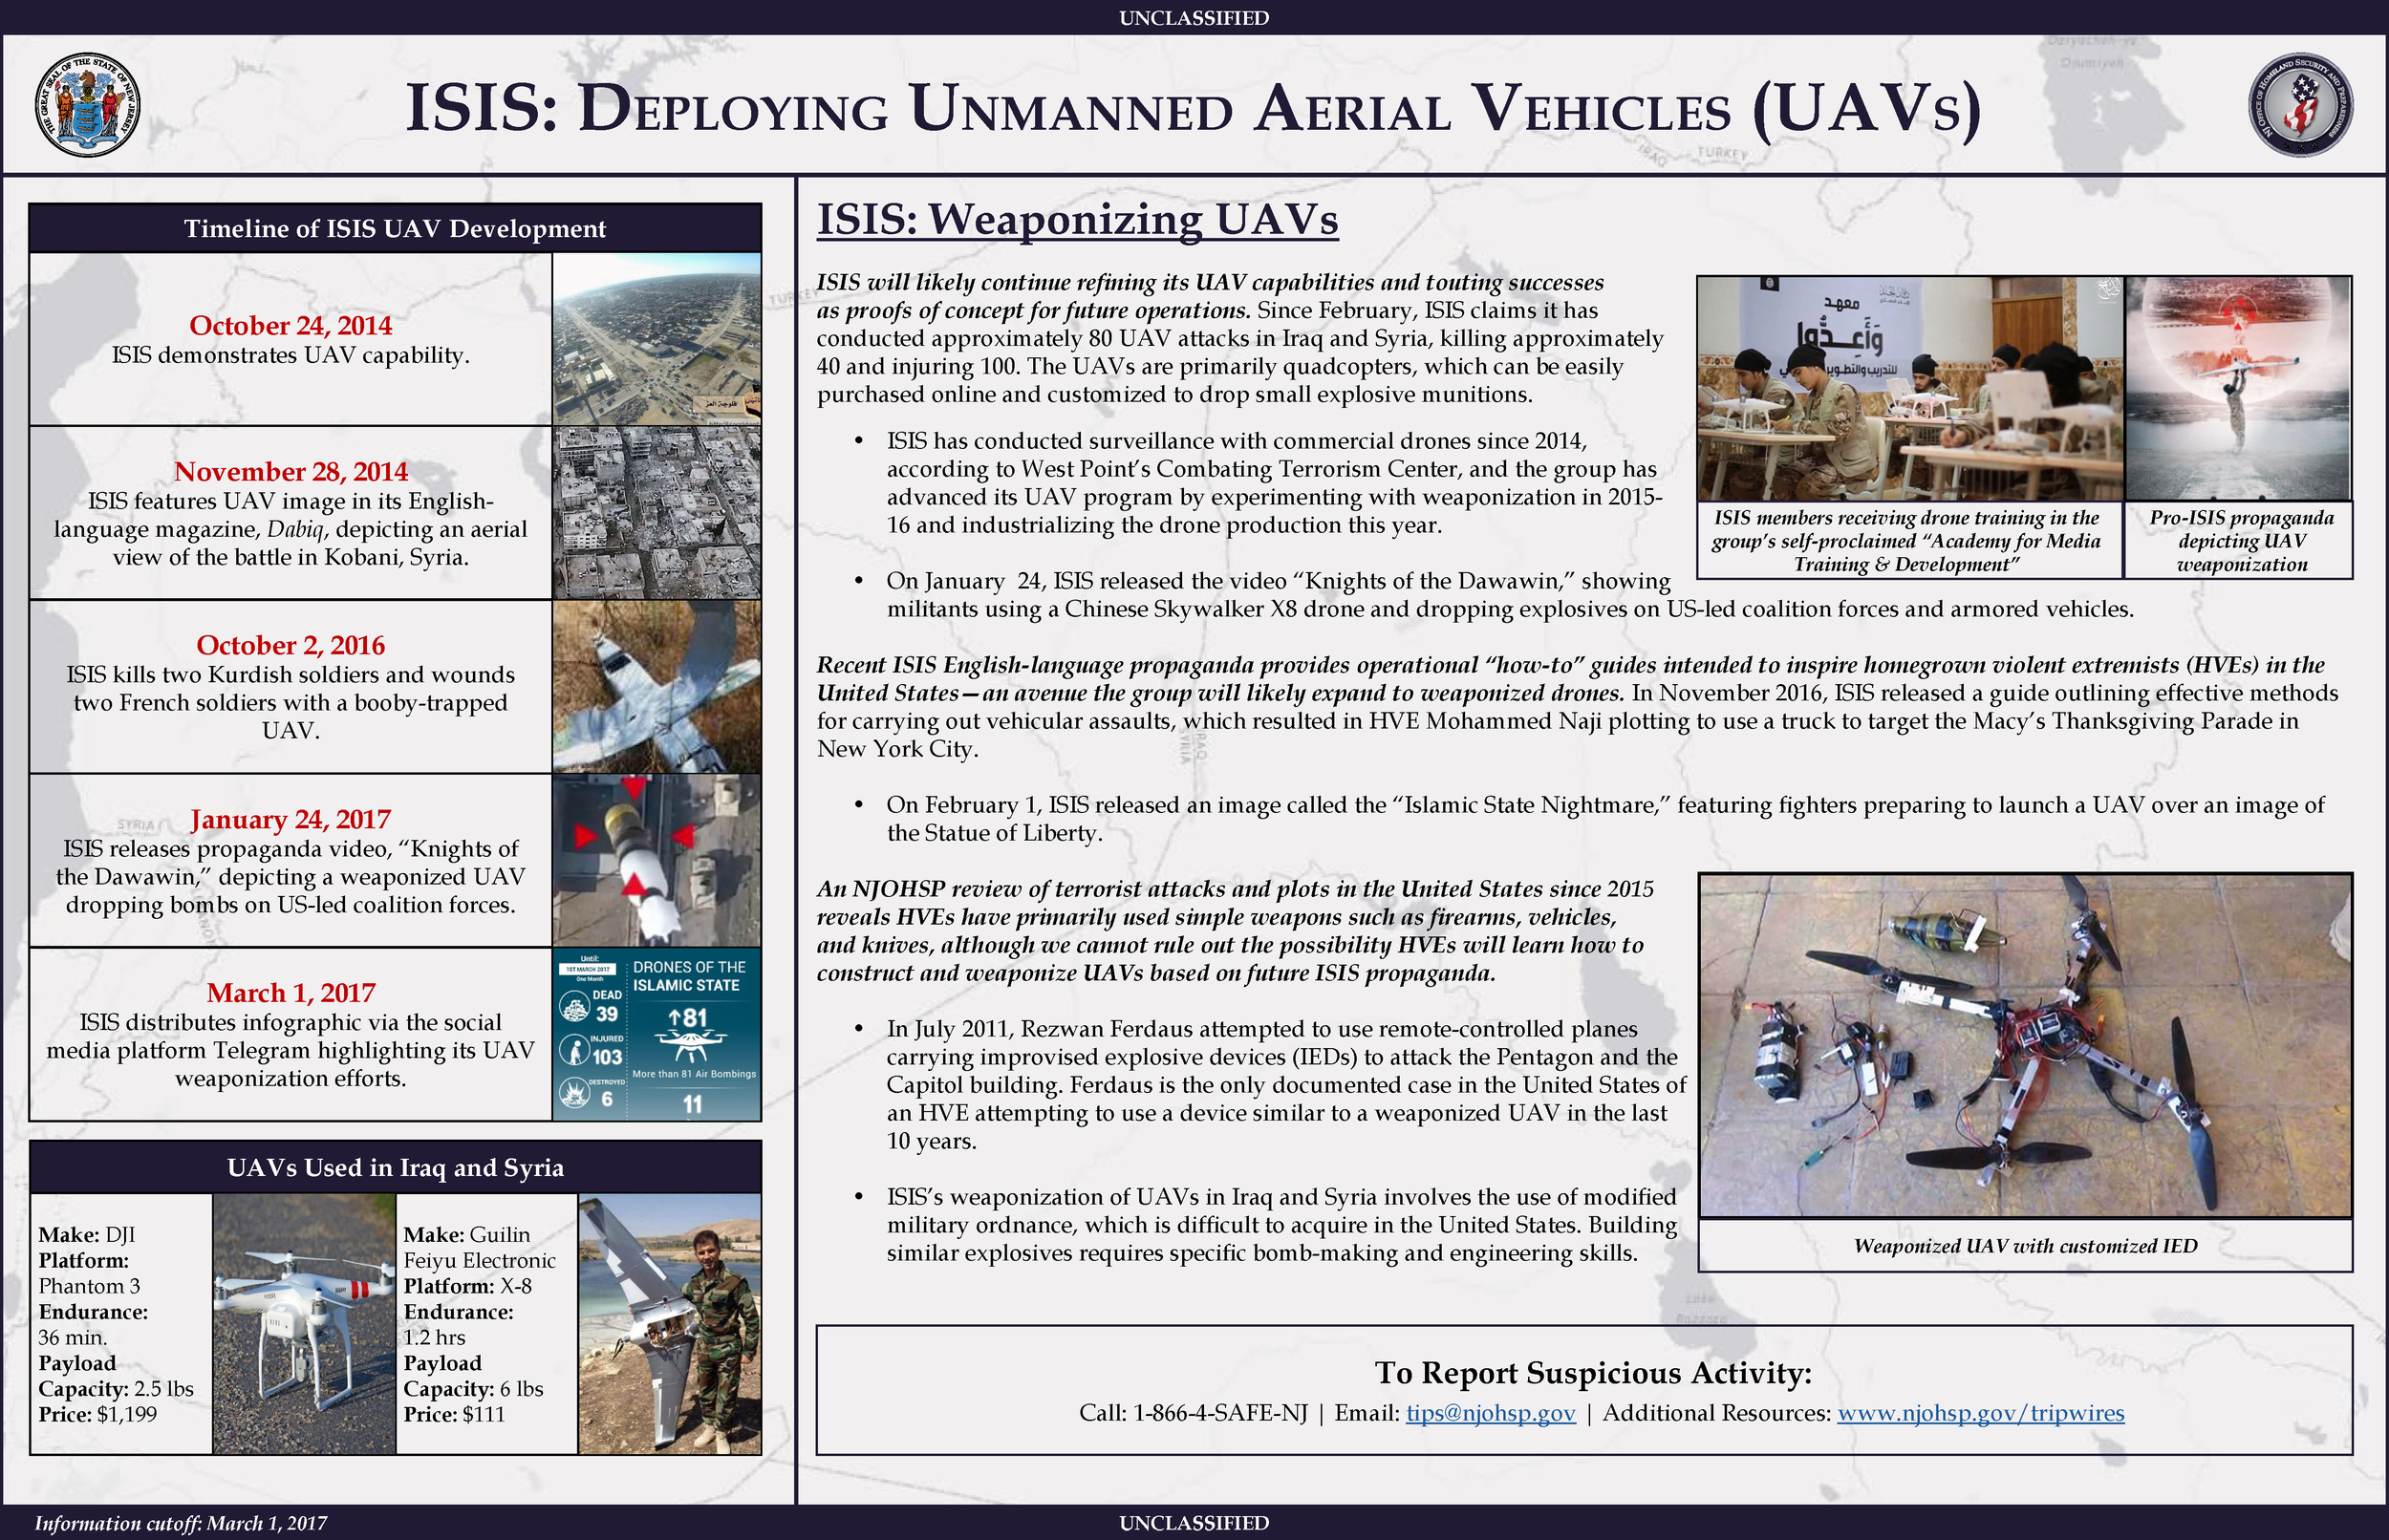 ISIS: Deploying Unmanned Aerial Vehicles (UAVs)